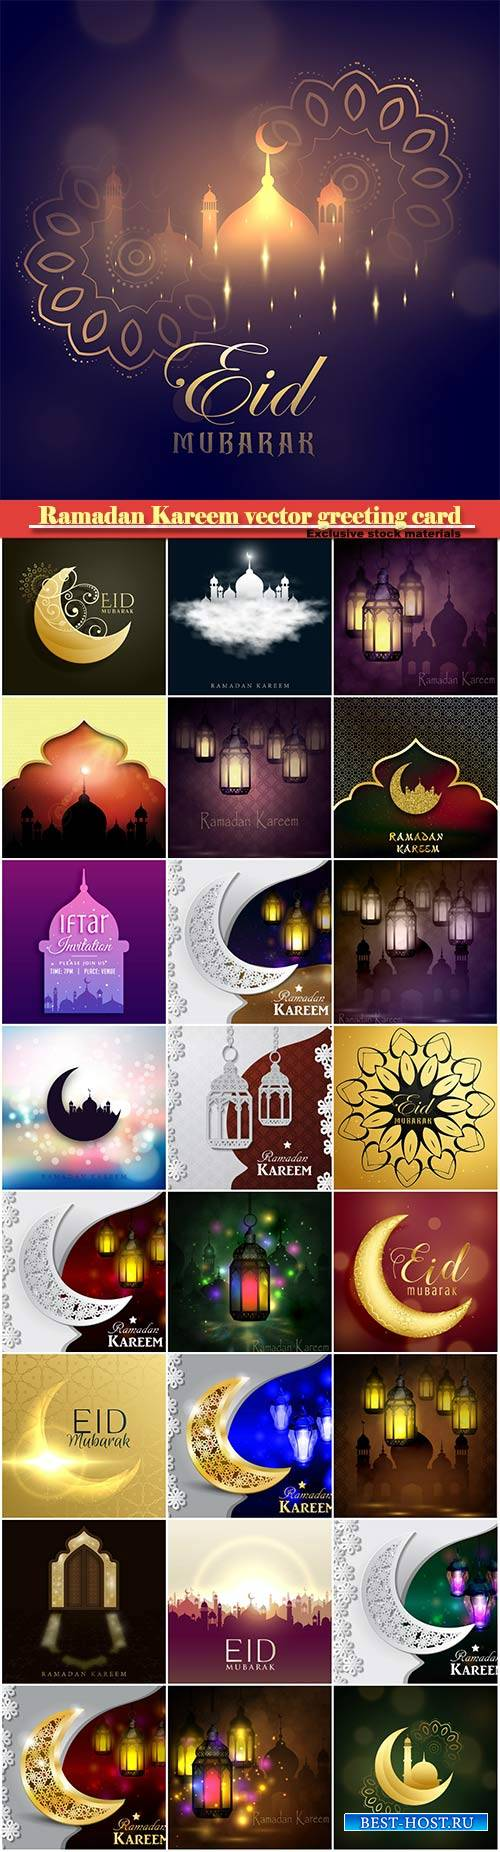 Ramadan Kareem vector greeting card, islamic background #3